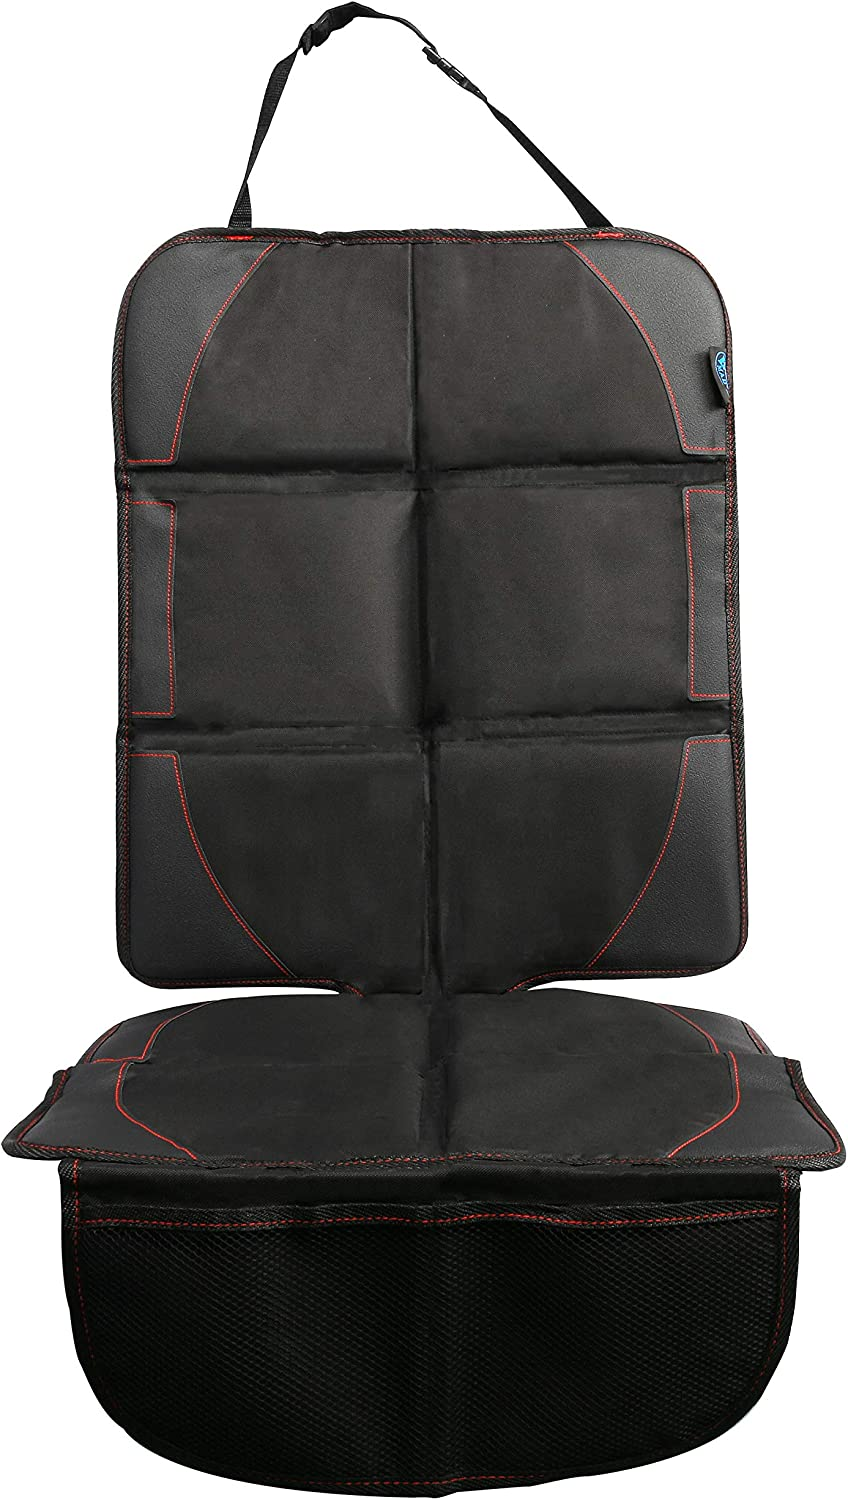 Rovtop Car Seat Protector Protects with Organiser Pockets ...